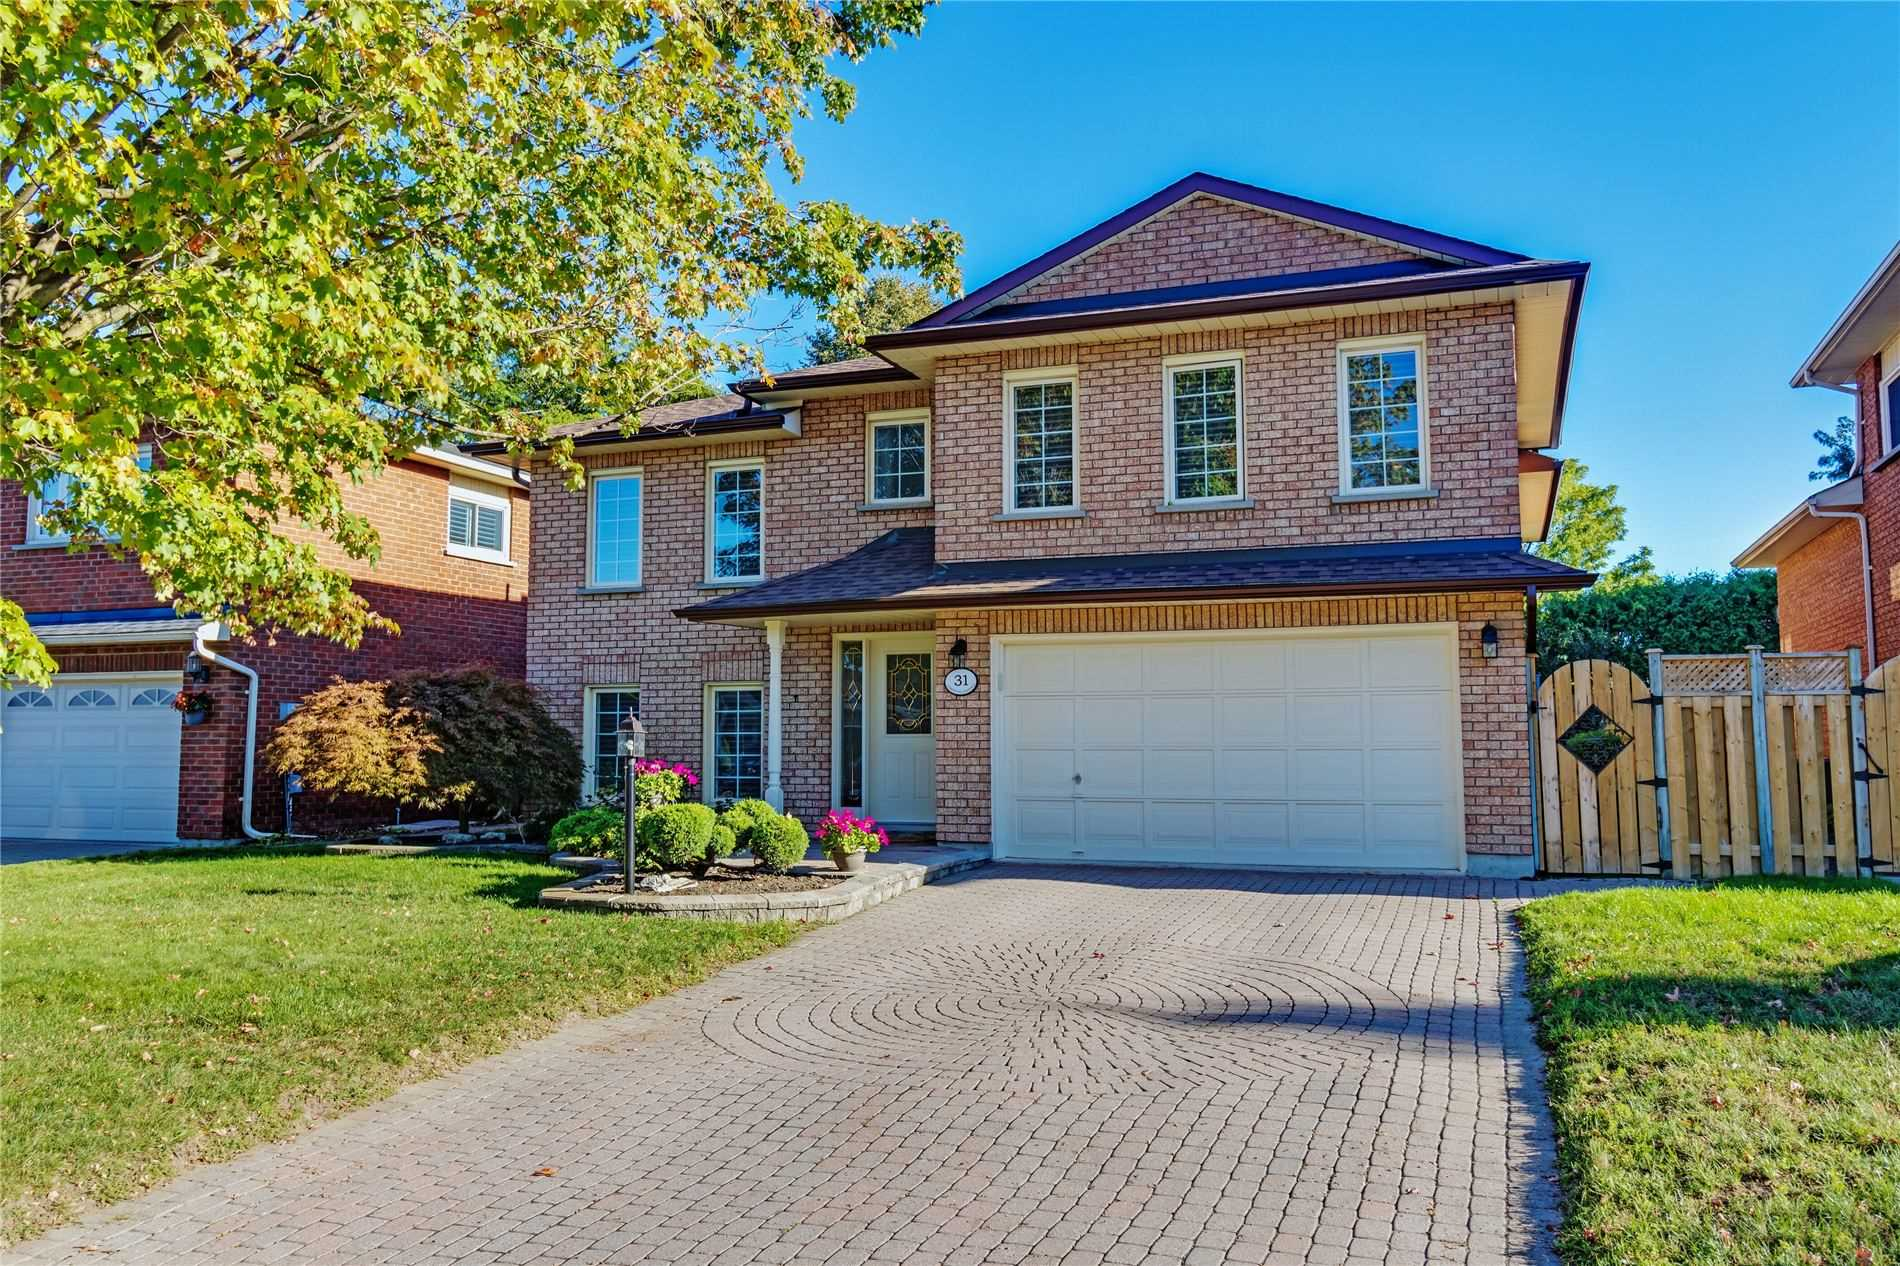 Detached house For Sale In Whitby